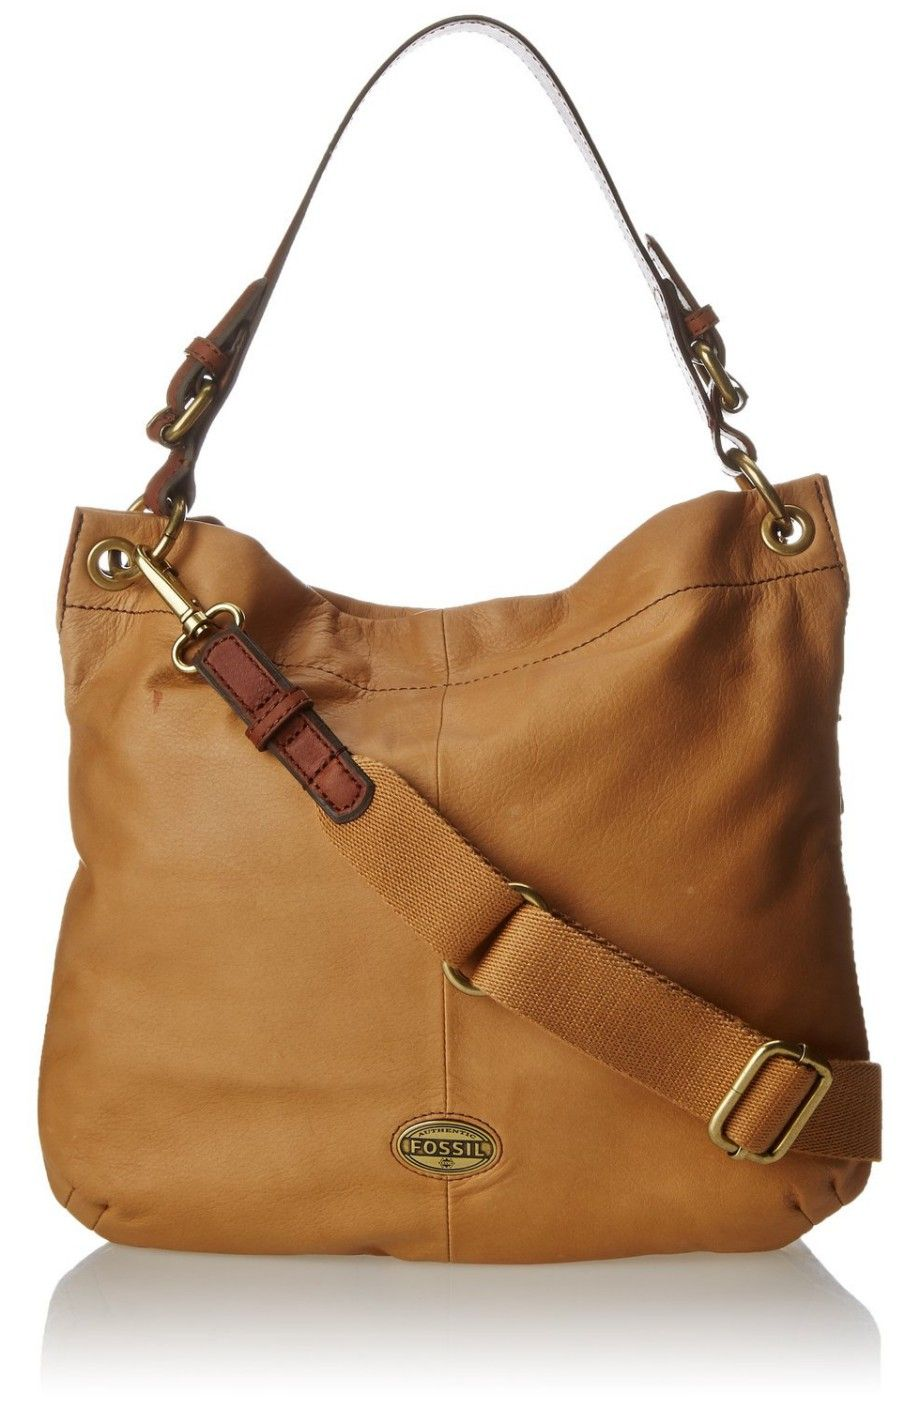 Fossil Explorer Hobo Shoulder Bag.. I'd like a medium sized purse ...